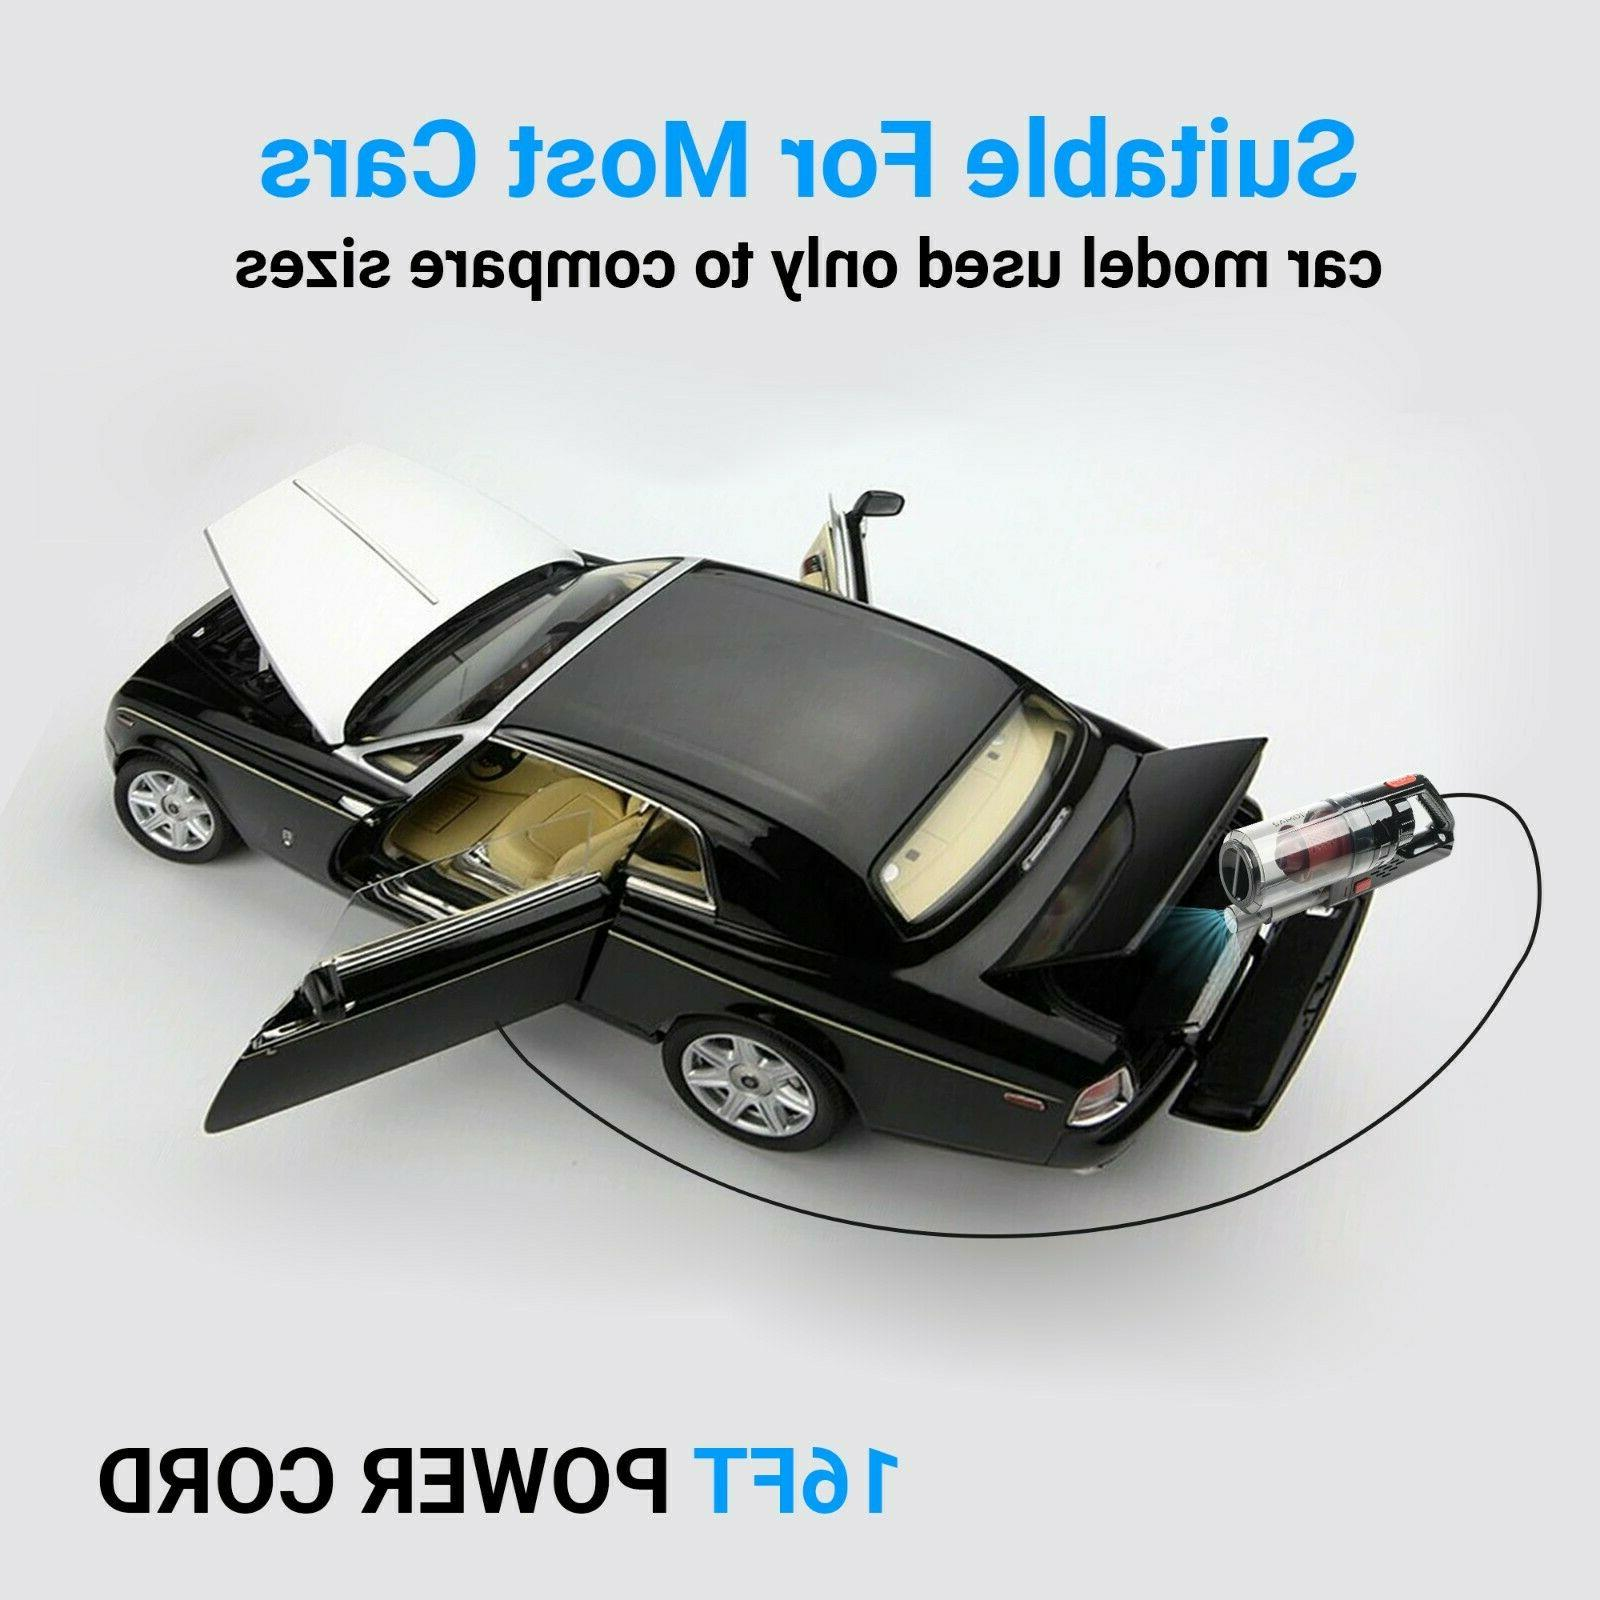 Powerful Car Vacuum Portable strong Suction